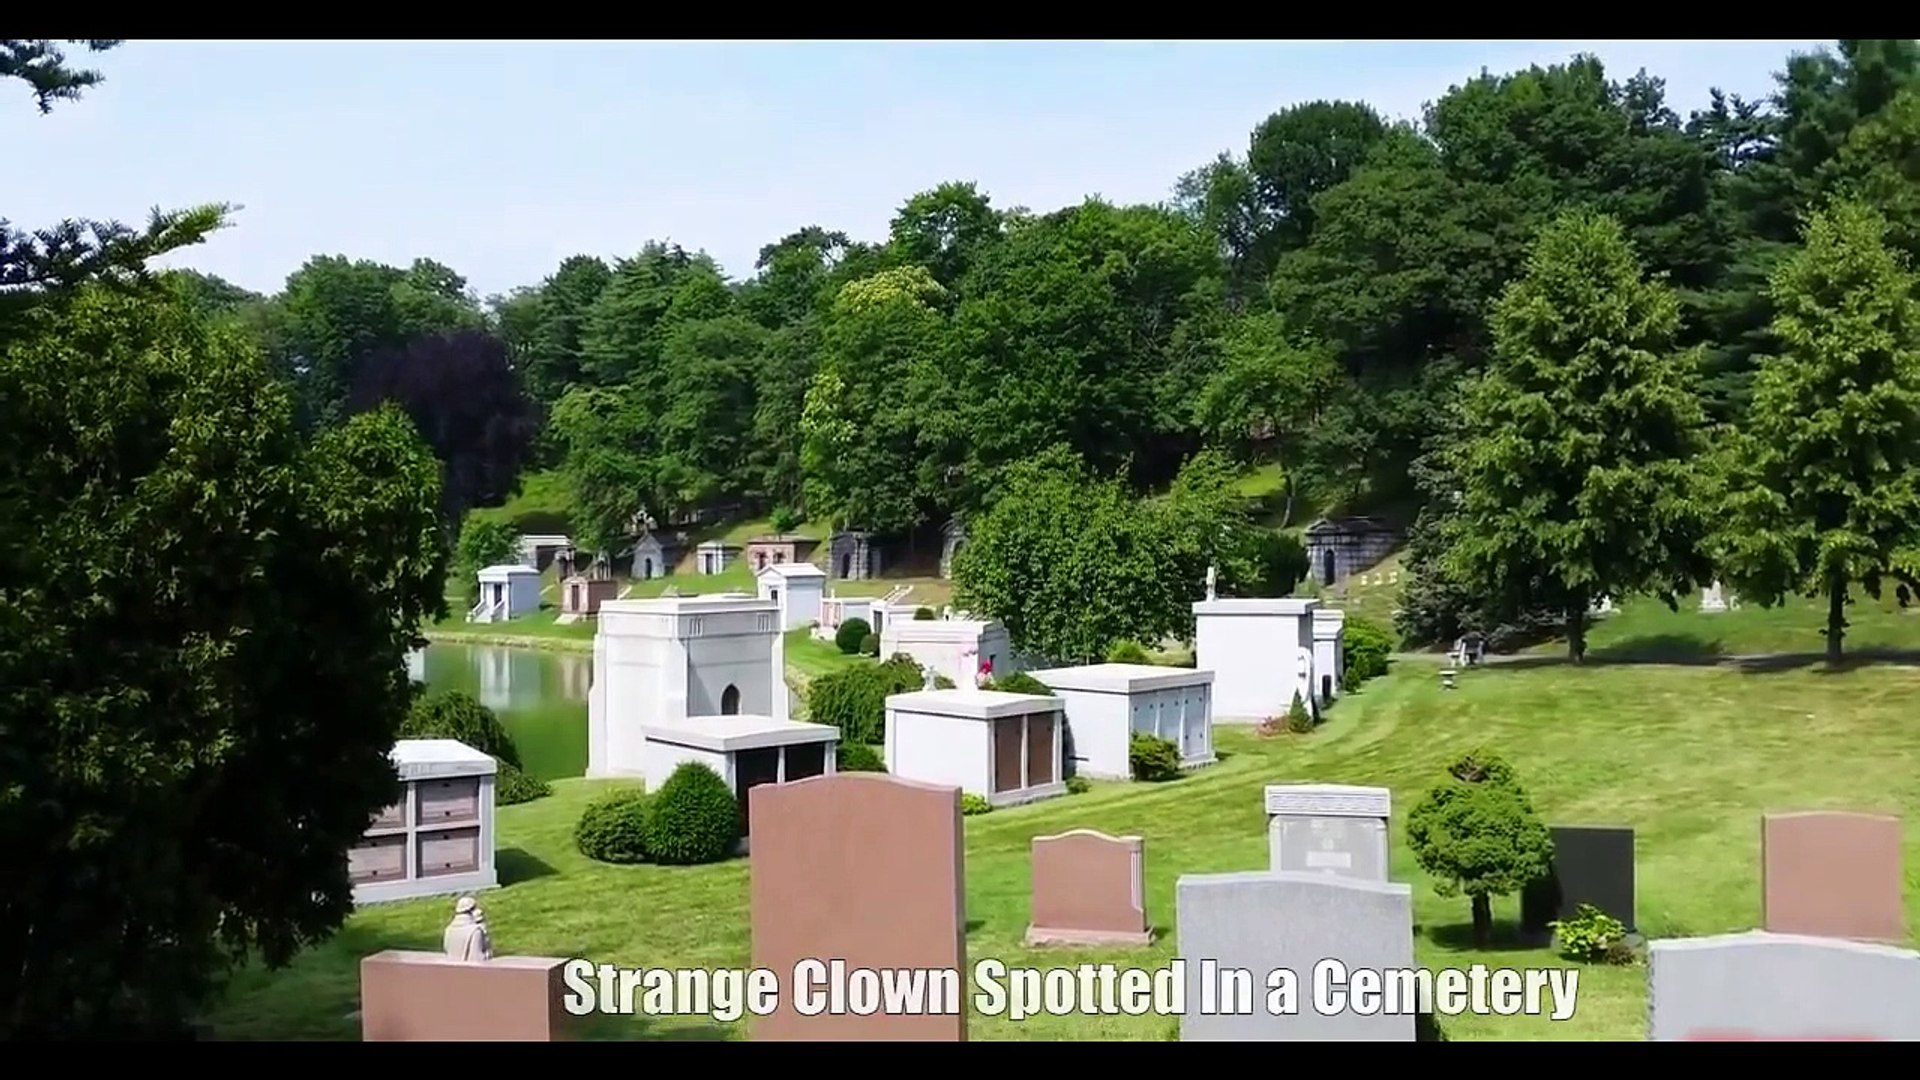 Most Scary Video, Strange Clown Spotted in a Cemetery